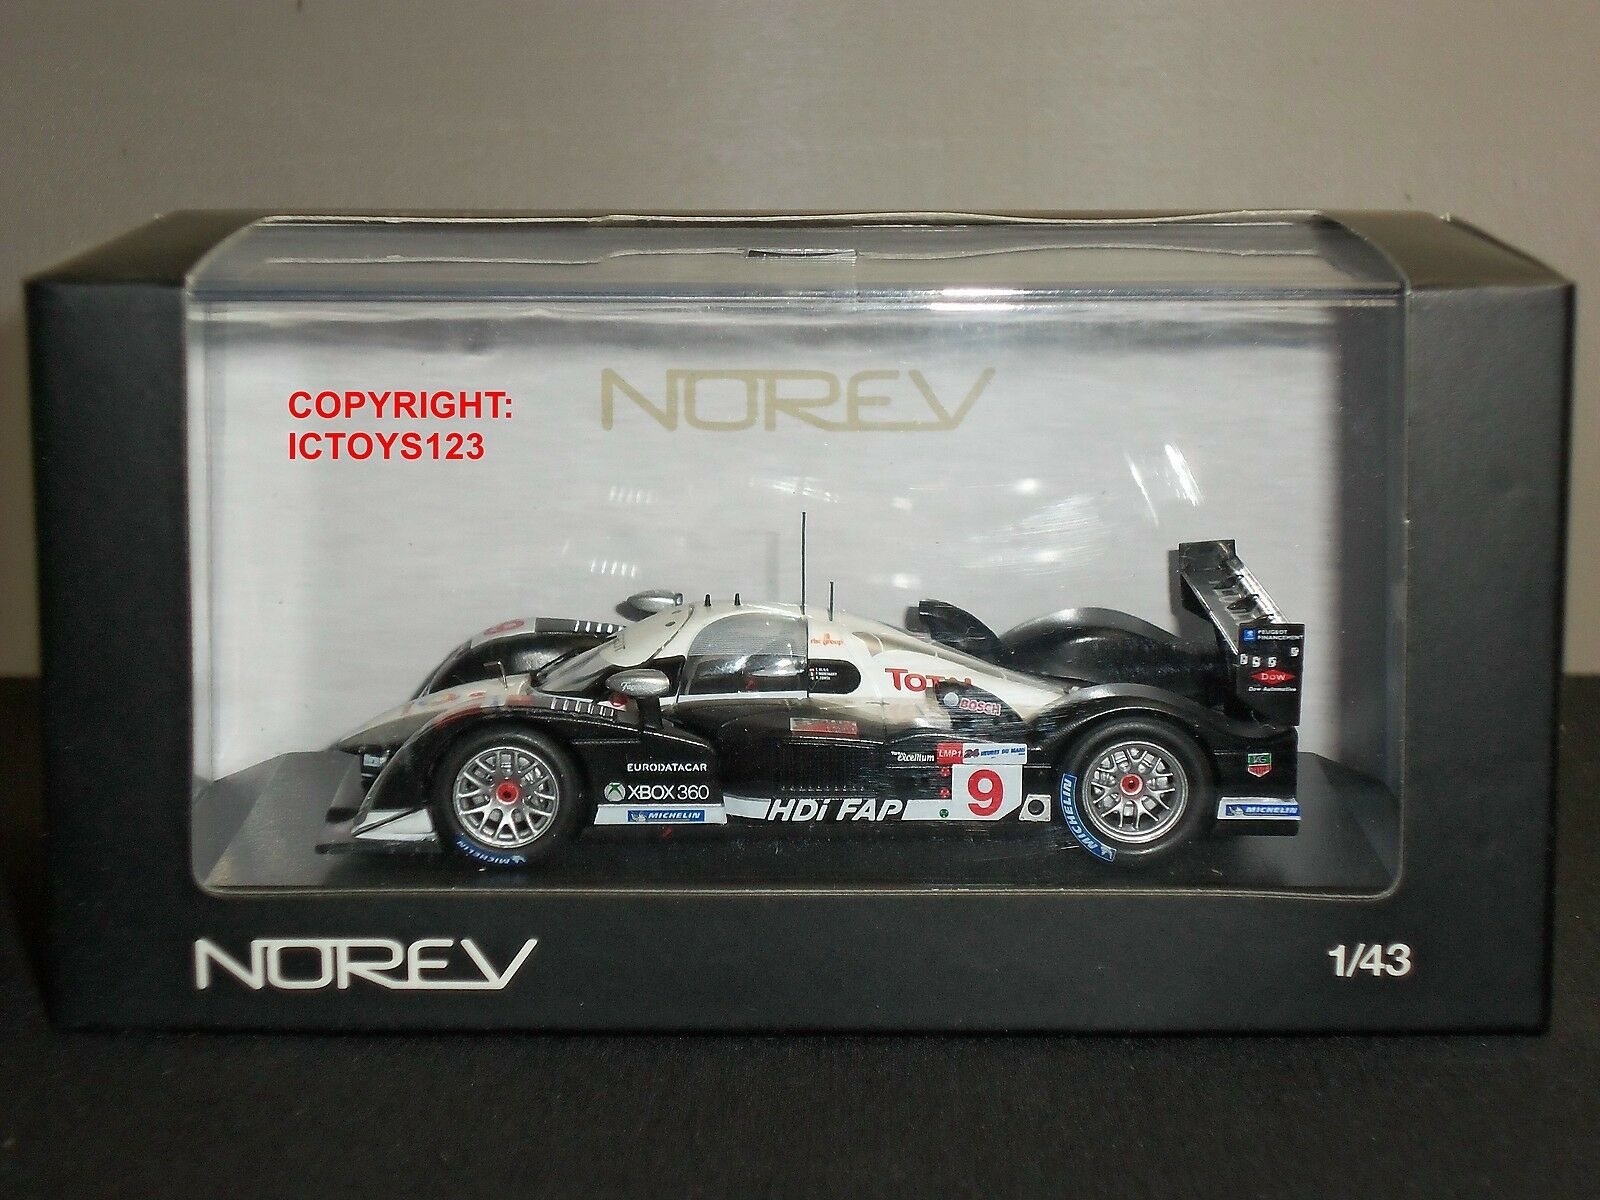 NOREV 472724 PEUGEOT 908 LE MANS 2008 NO.9 DIECAST MODEL FORMULA 1 RACING CAR